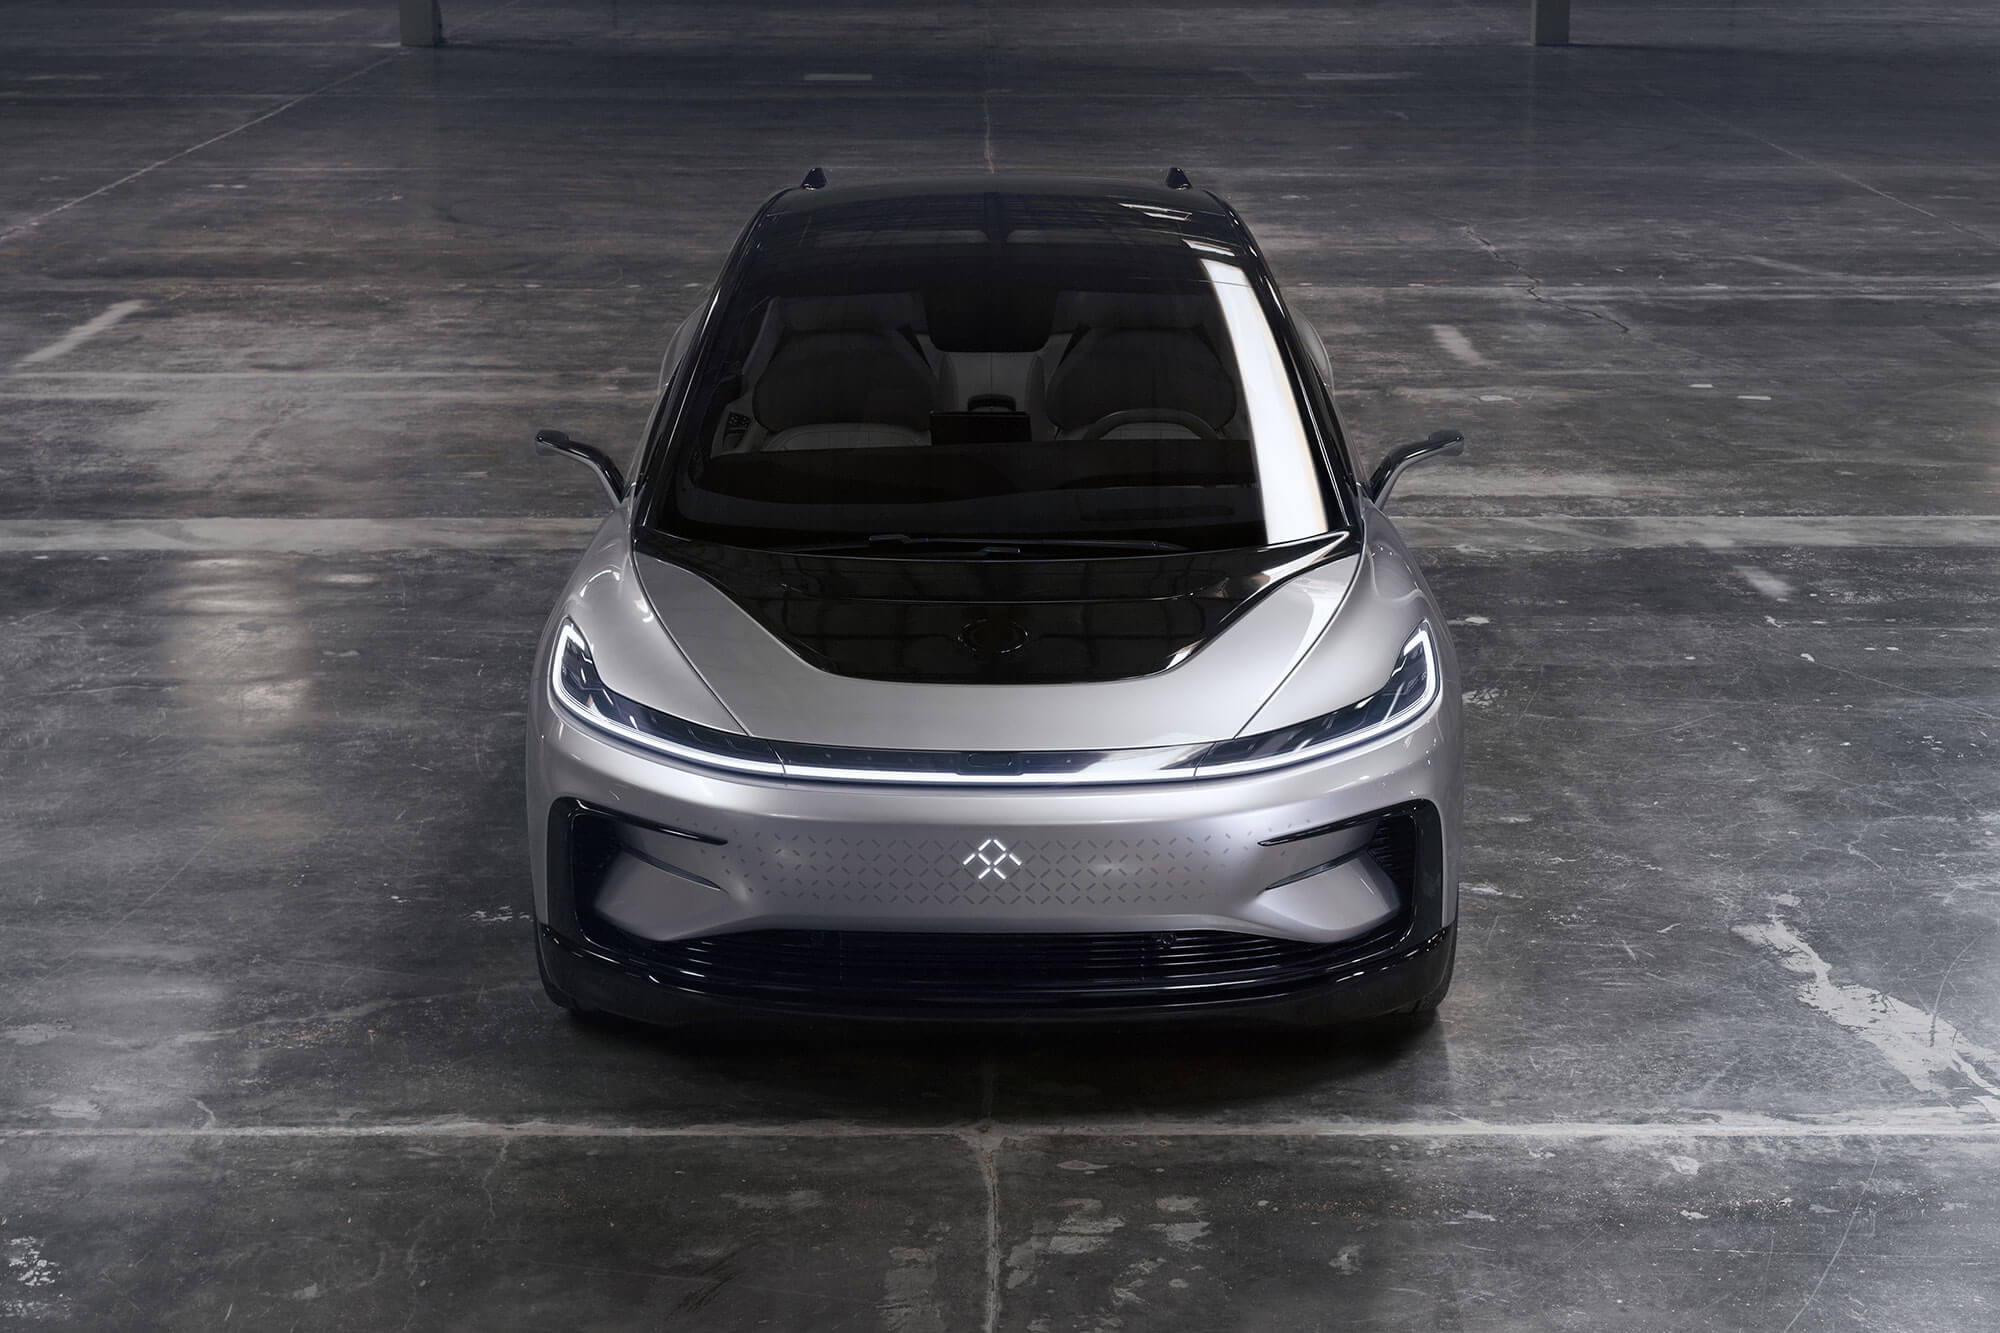 The FF 91, the first prototype car from Faraday Future. The electric car was unveiled at the 2017 Consumer Electronics Show.